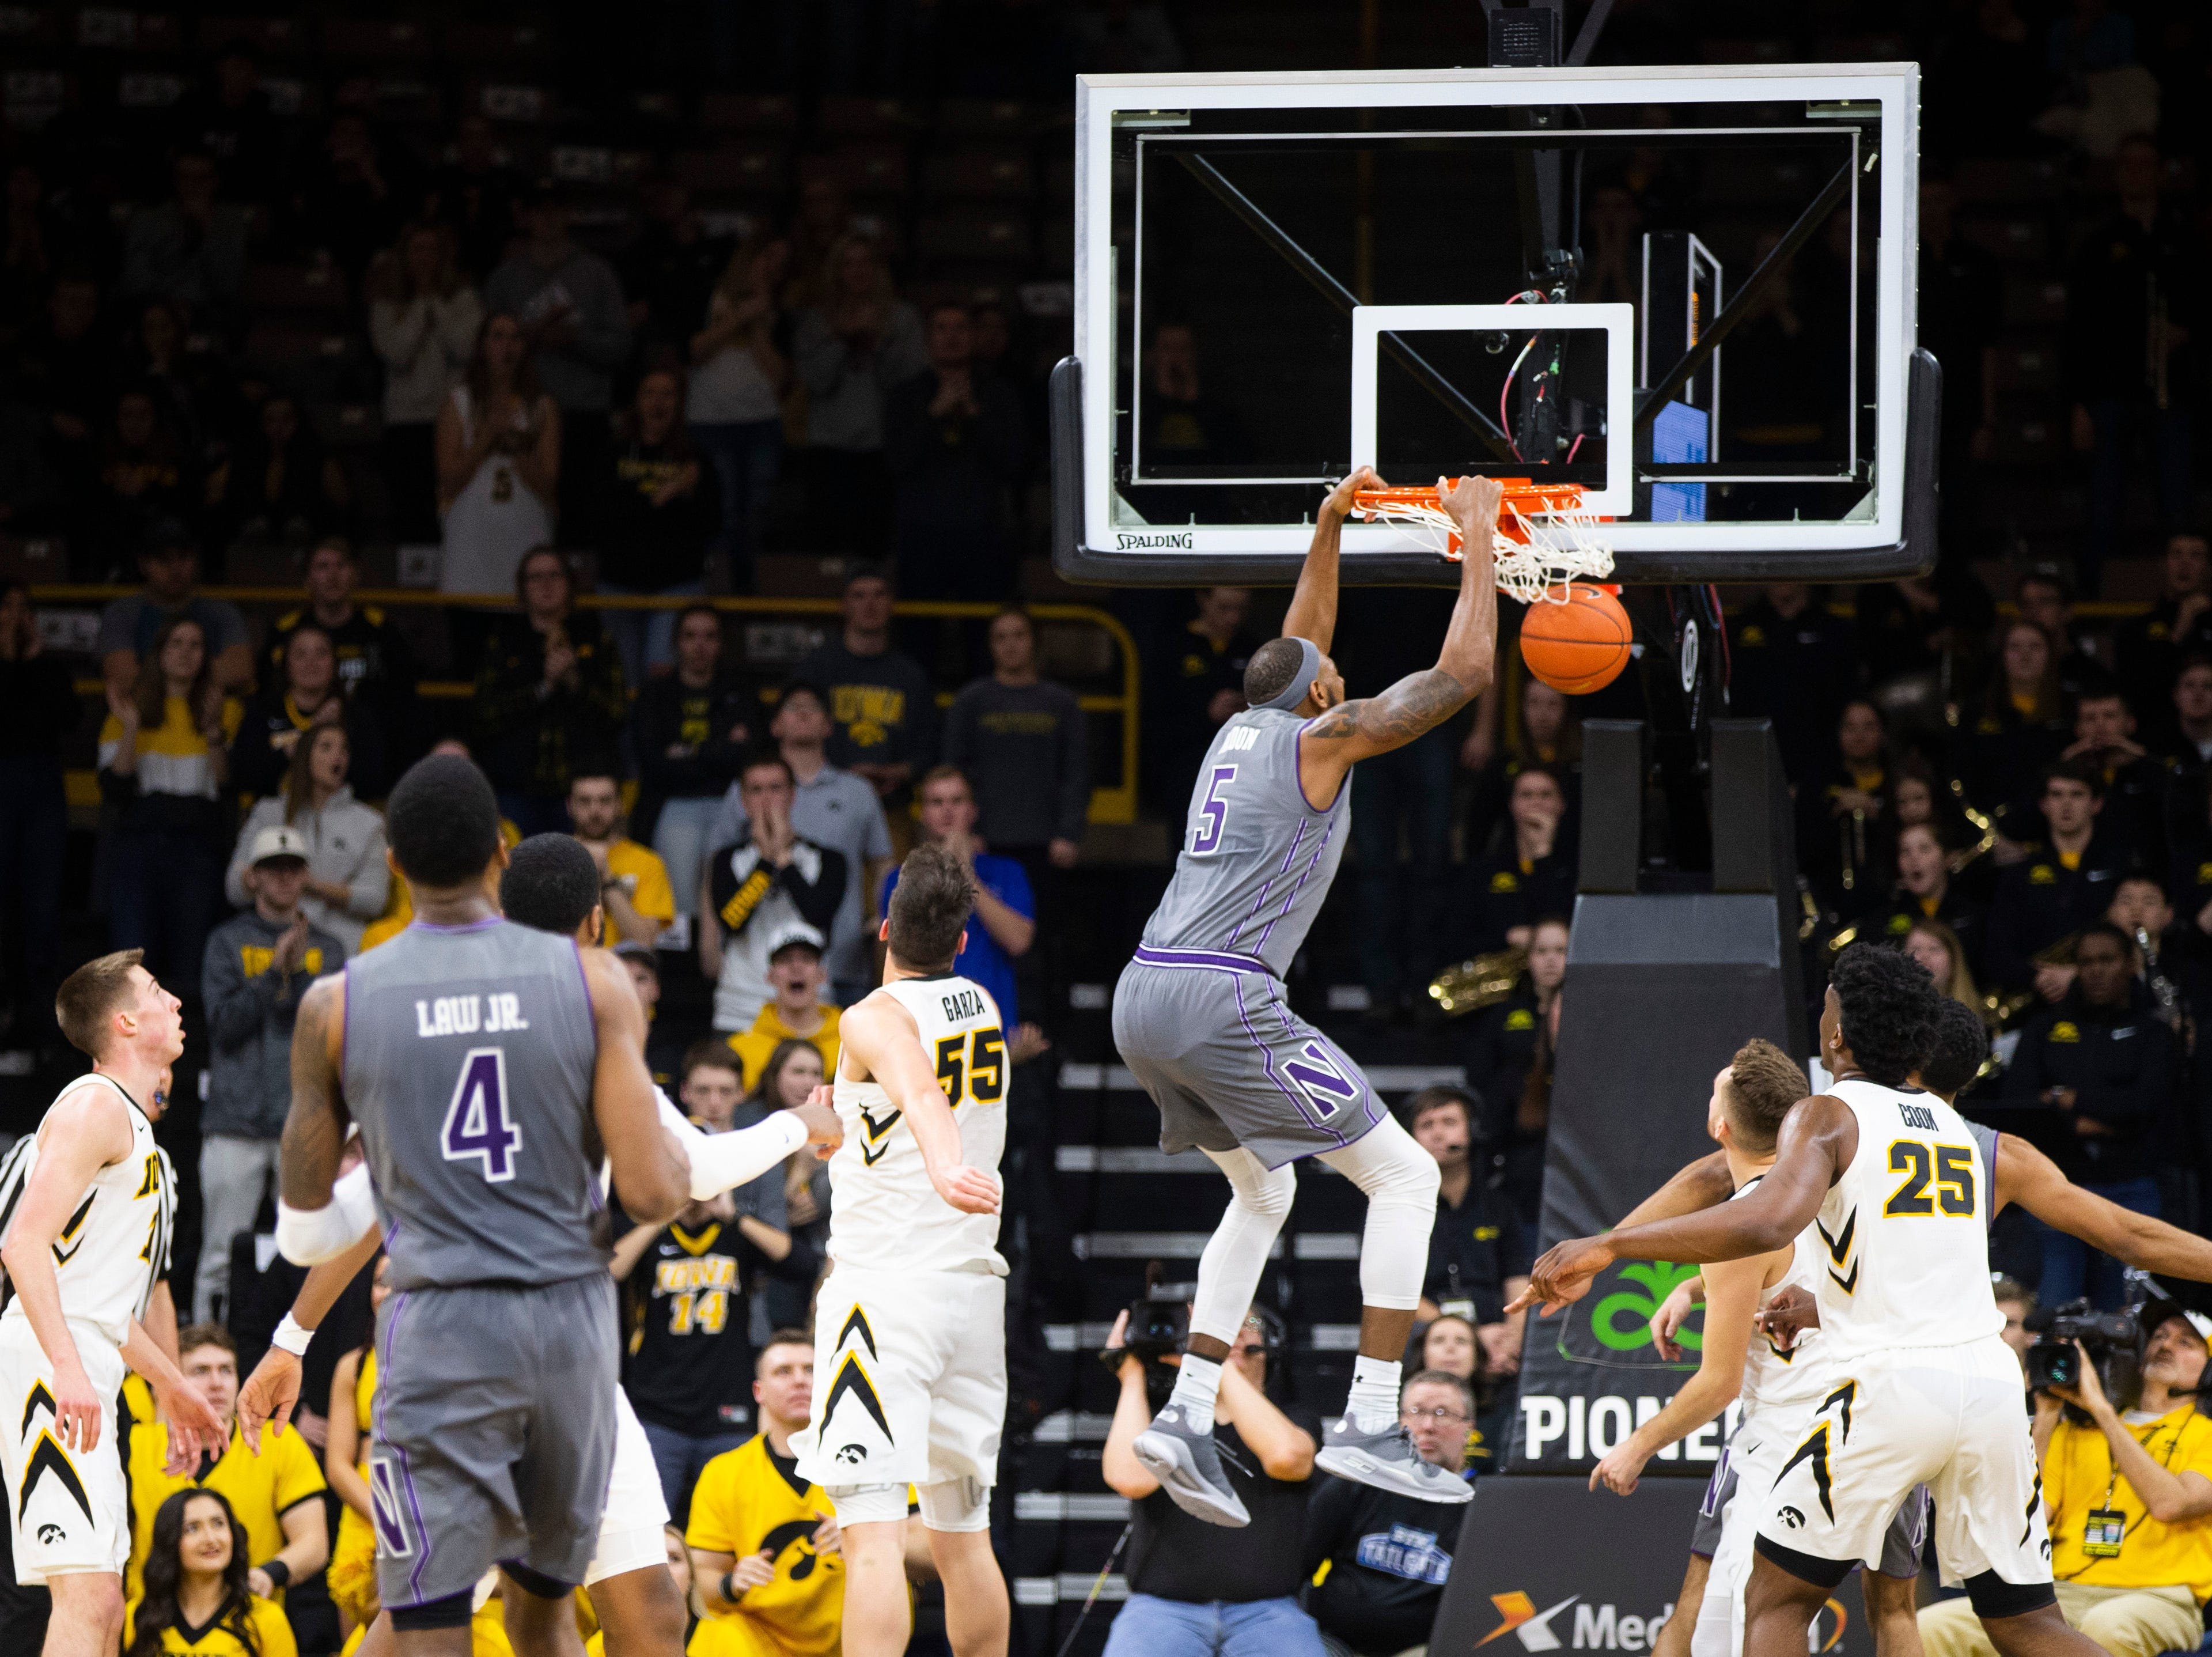 Northwestern center 	Dererk Pardon (5) dunks during a NCAA Big Ten Conference men's basketball game on Sunday, Feb. 10, 2019 at Carver-Hawkeye Arena in Iowa City, Iowa.